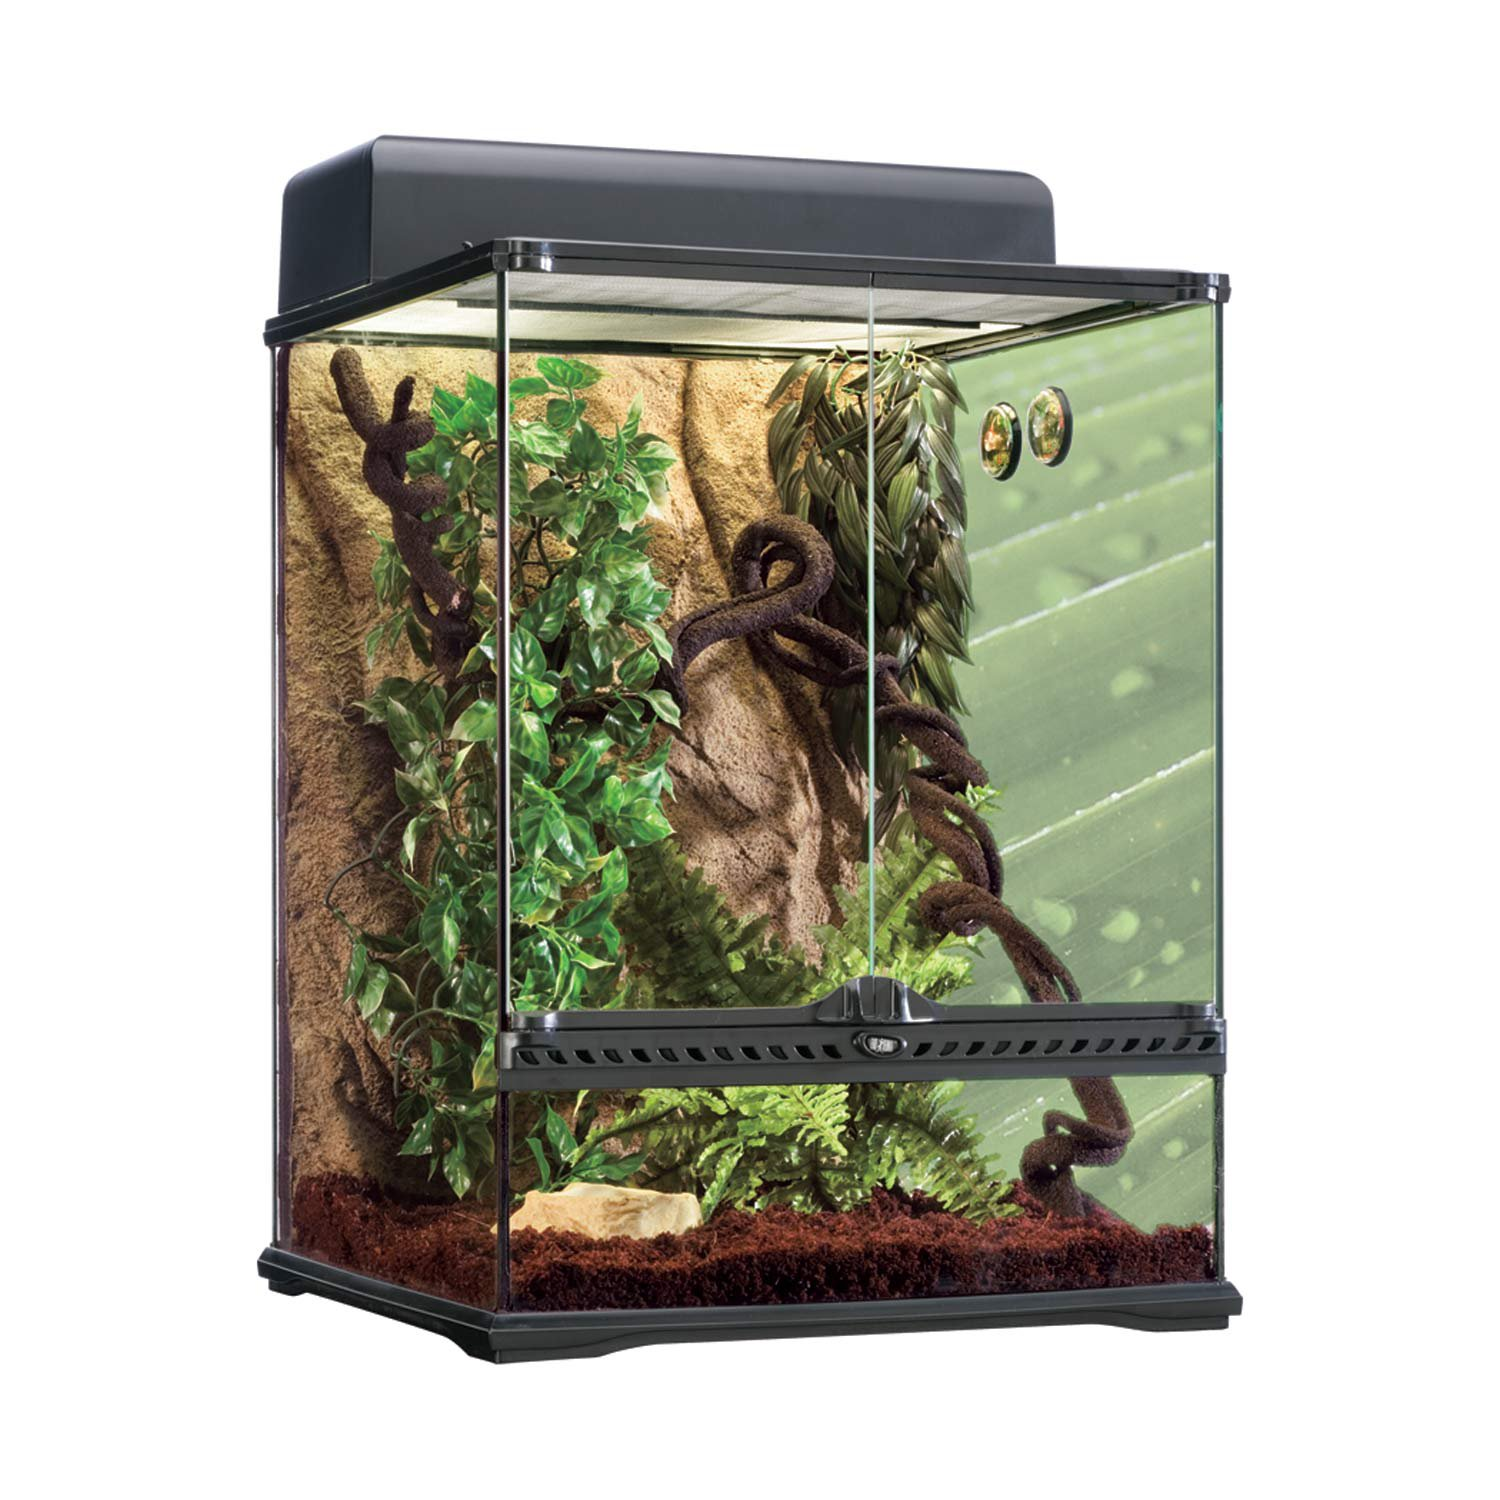 exo terra rainforest reptile glass terrarium kit petco. Black Bedroom Furniture Sets. Home Design Ideas